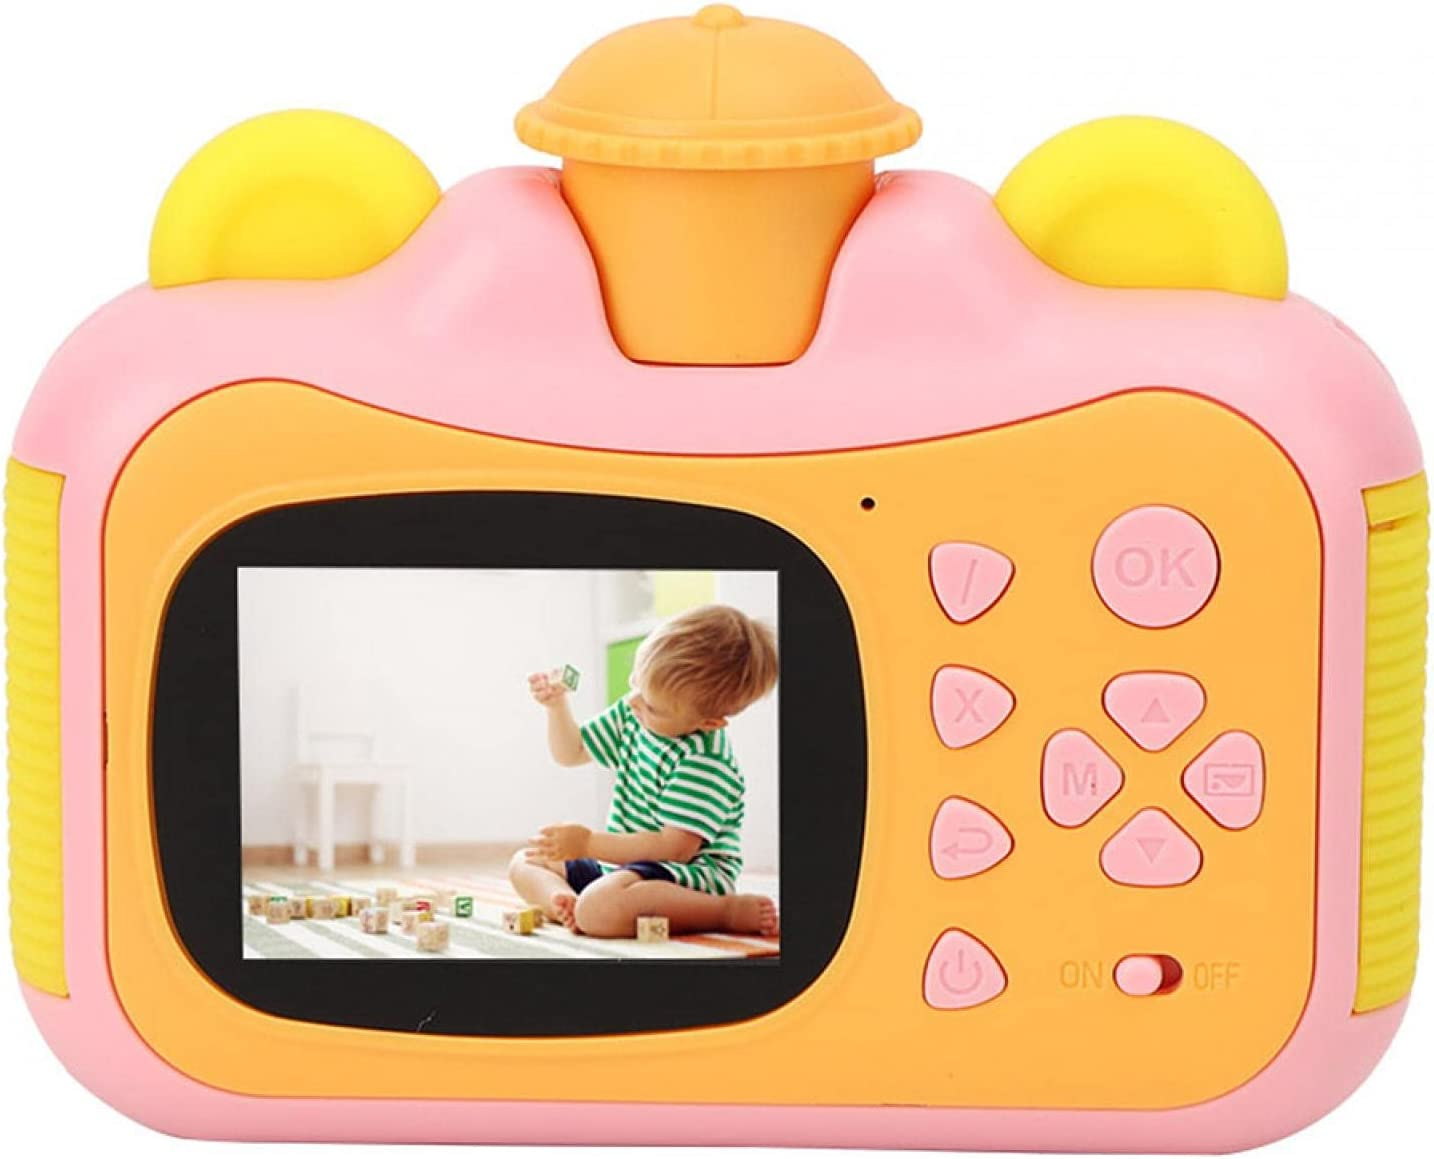 LZKW Bombing new work Kid New sales Camera Digital Instant Cute Portable Toy D